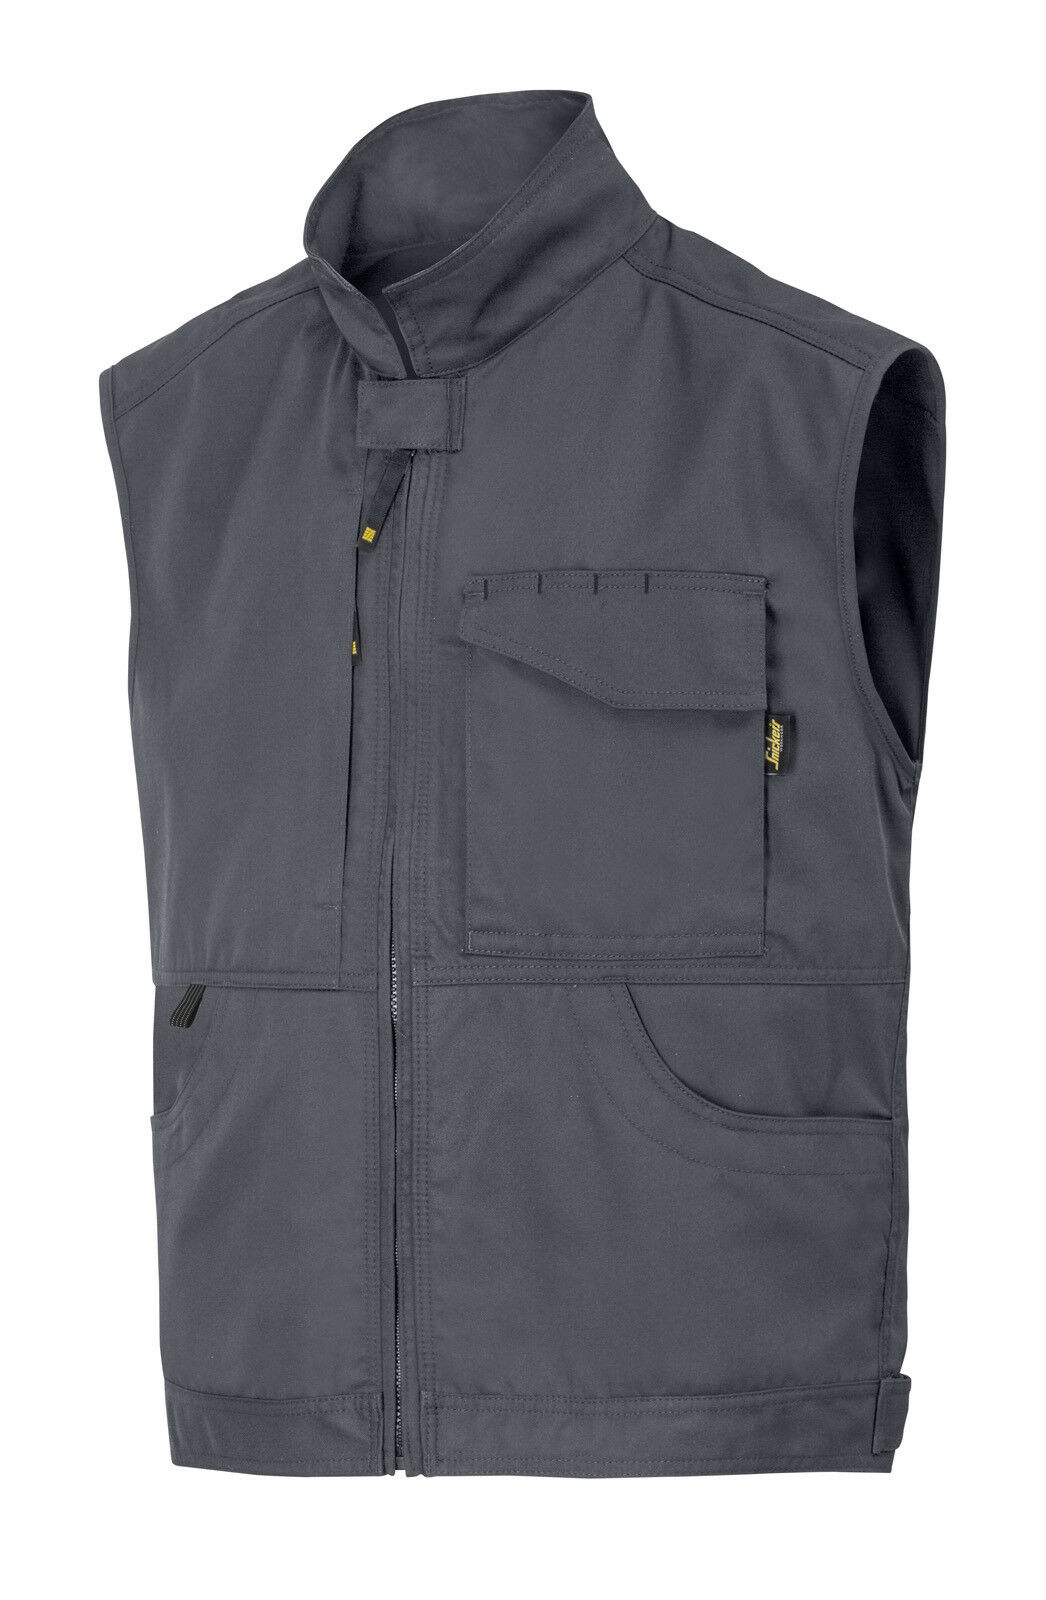 Wholeasel Work vest cheap workwear uniform vest for men China product